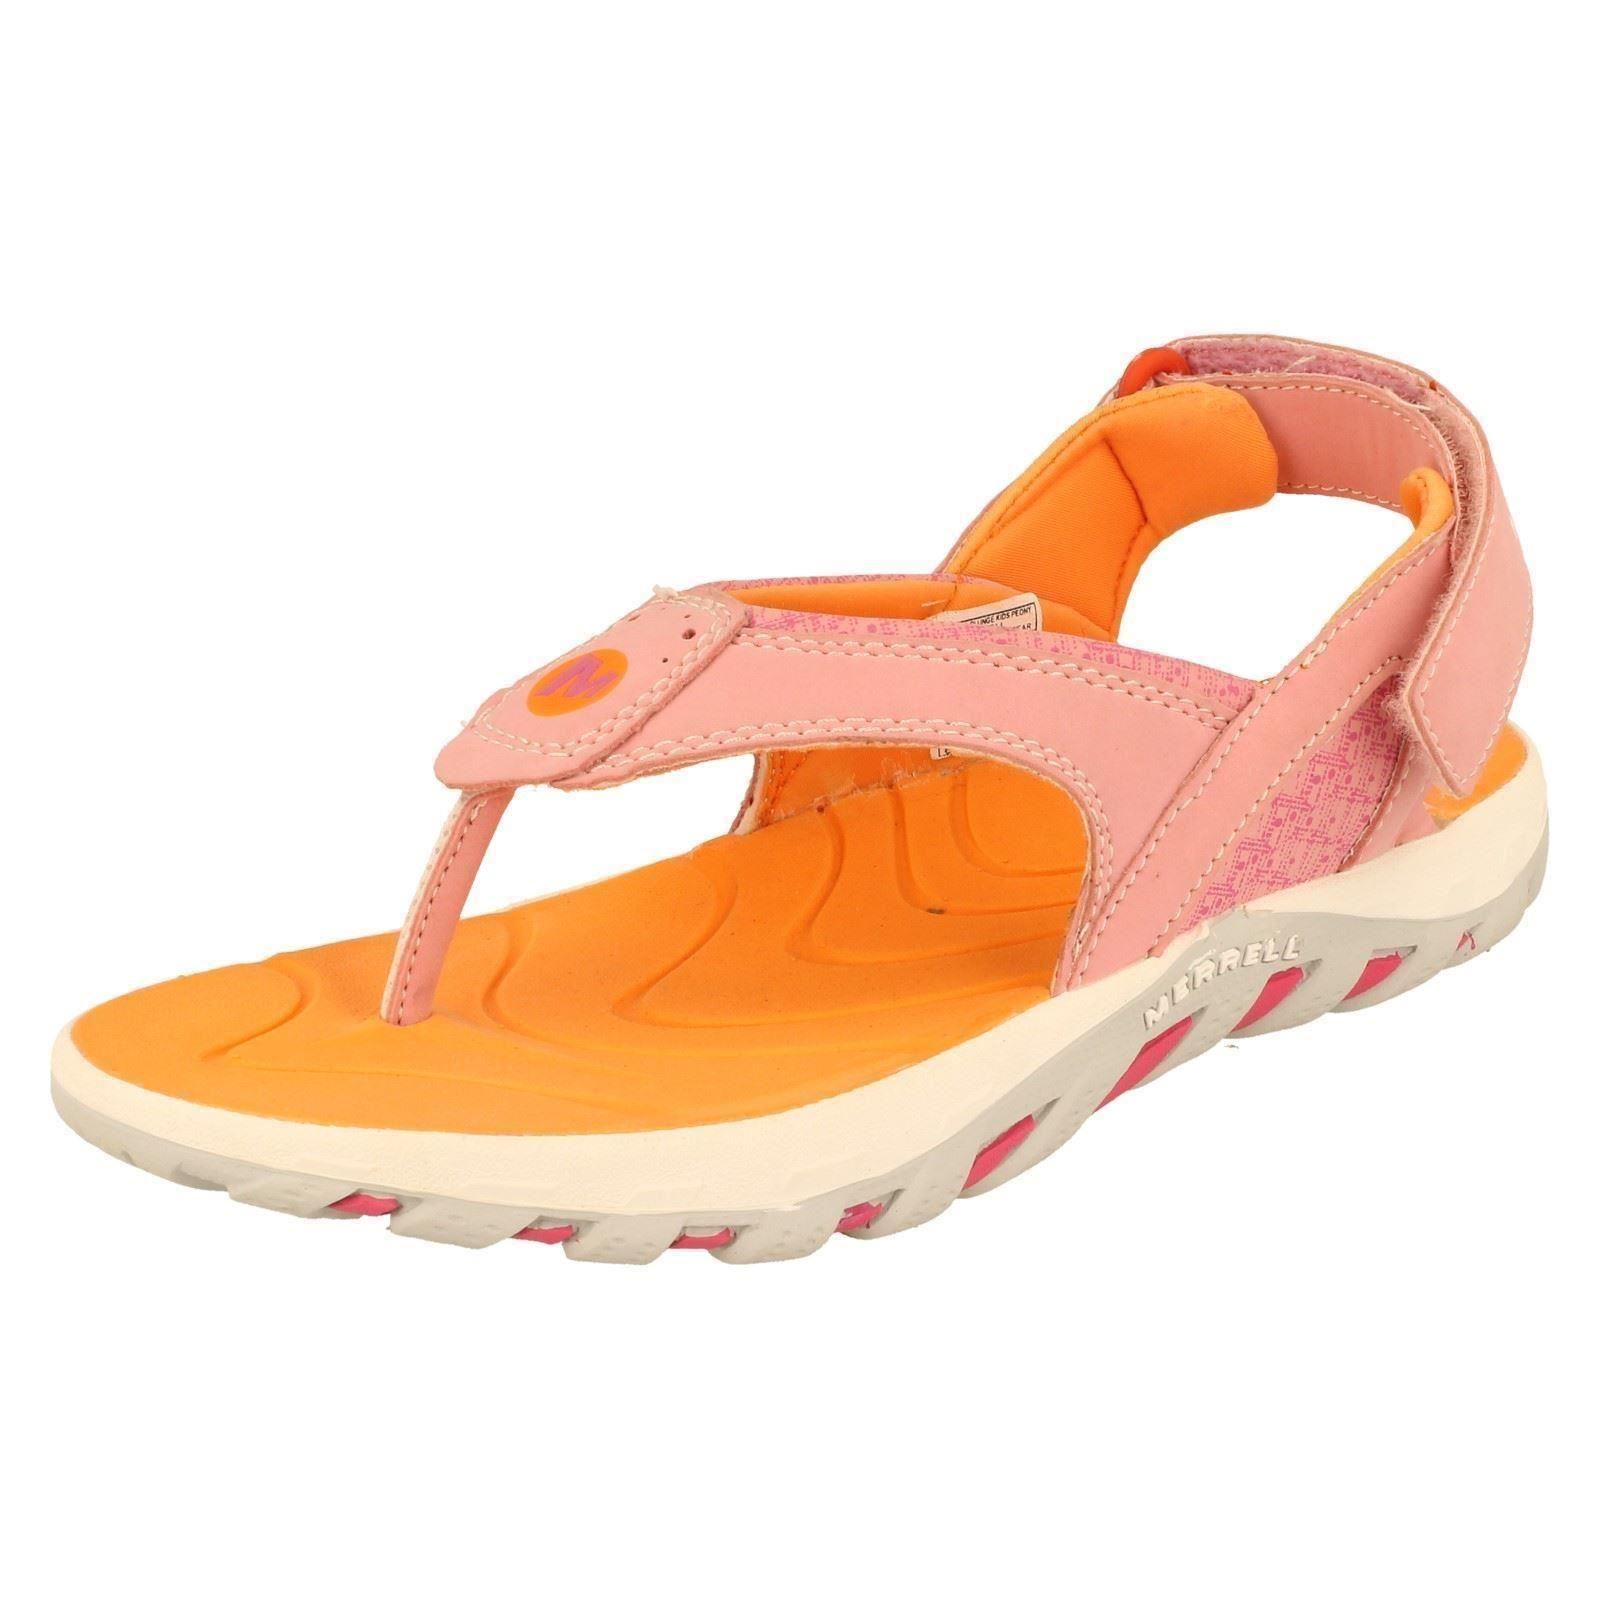 Girls Merrell Sandals Waterpro Plunge Style ~ K